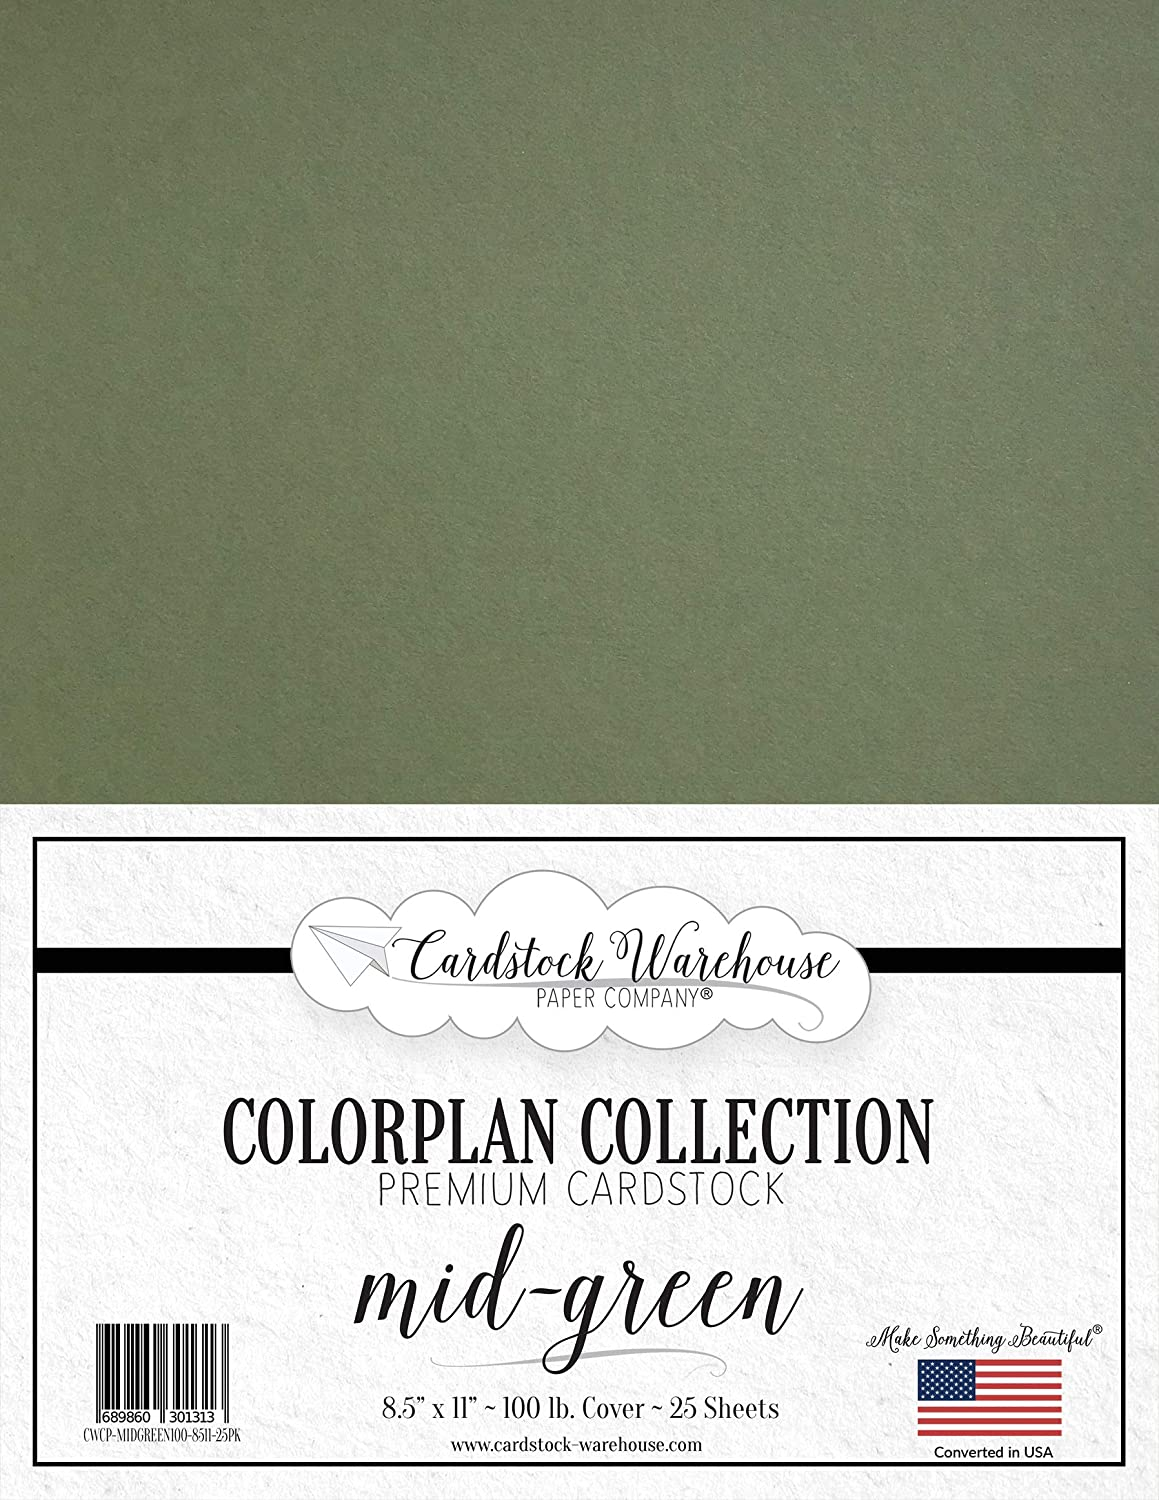 Mid Super sale period limited Green Cardstock Paper - Now on sale 8.5 x 100 lb. Cover 11 inch Premium